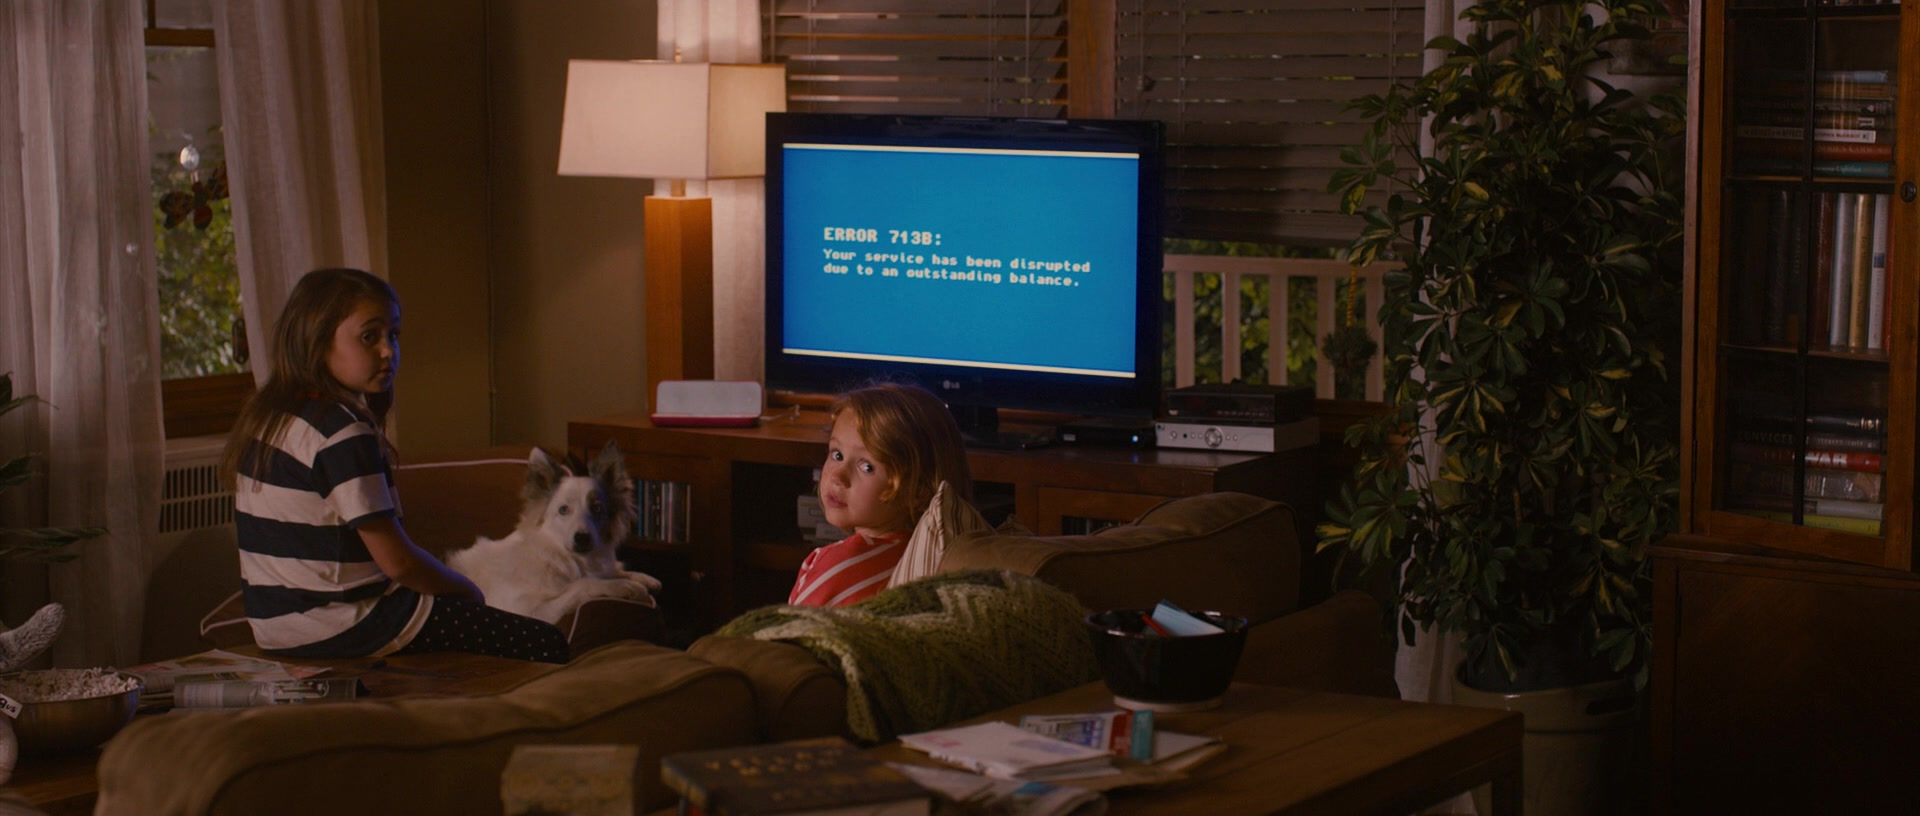 Lg Tv In Identity Thief 2013